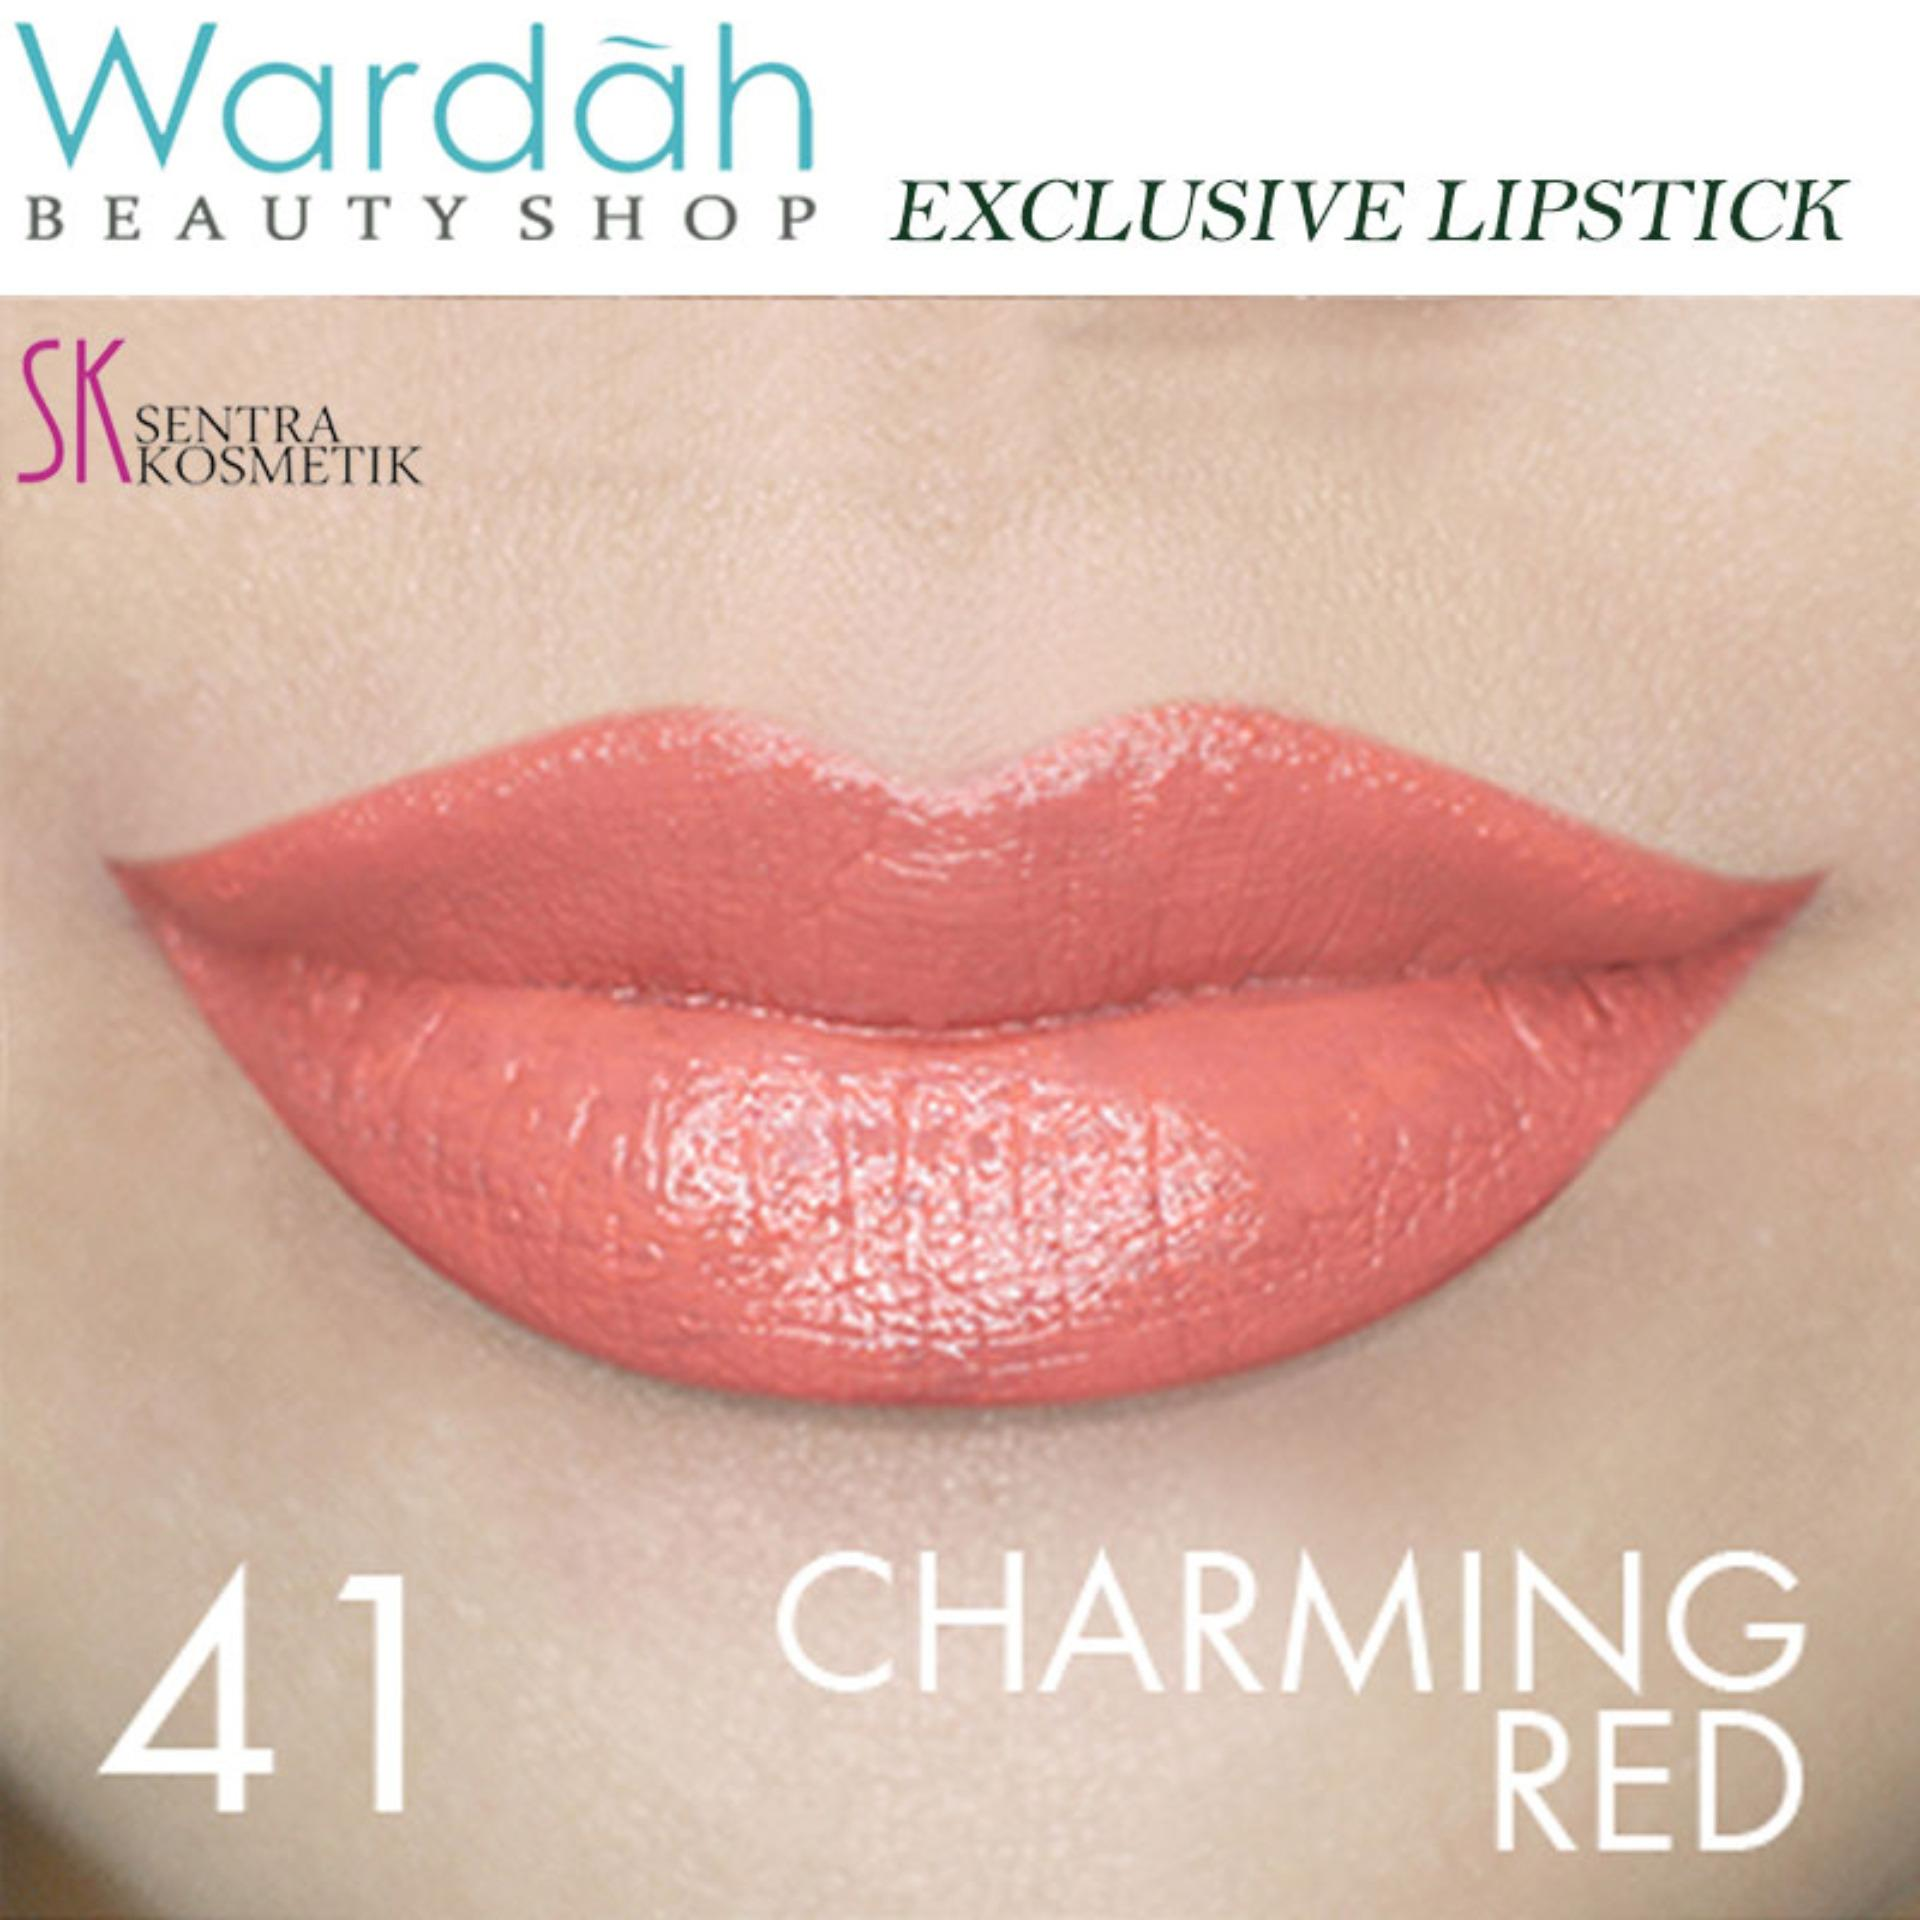 Wardah Exclusive Lipstick 41 - Charming Red